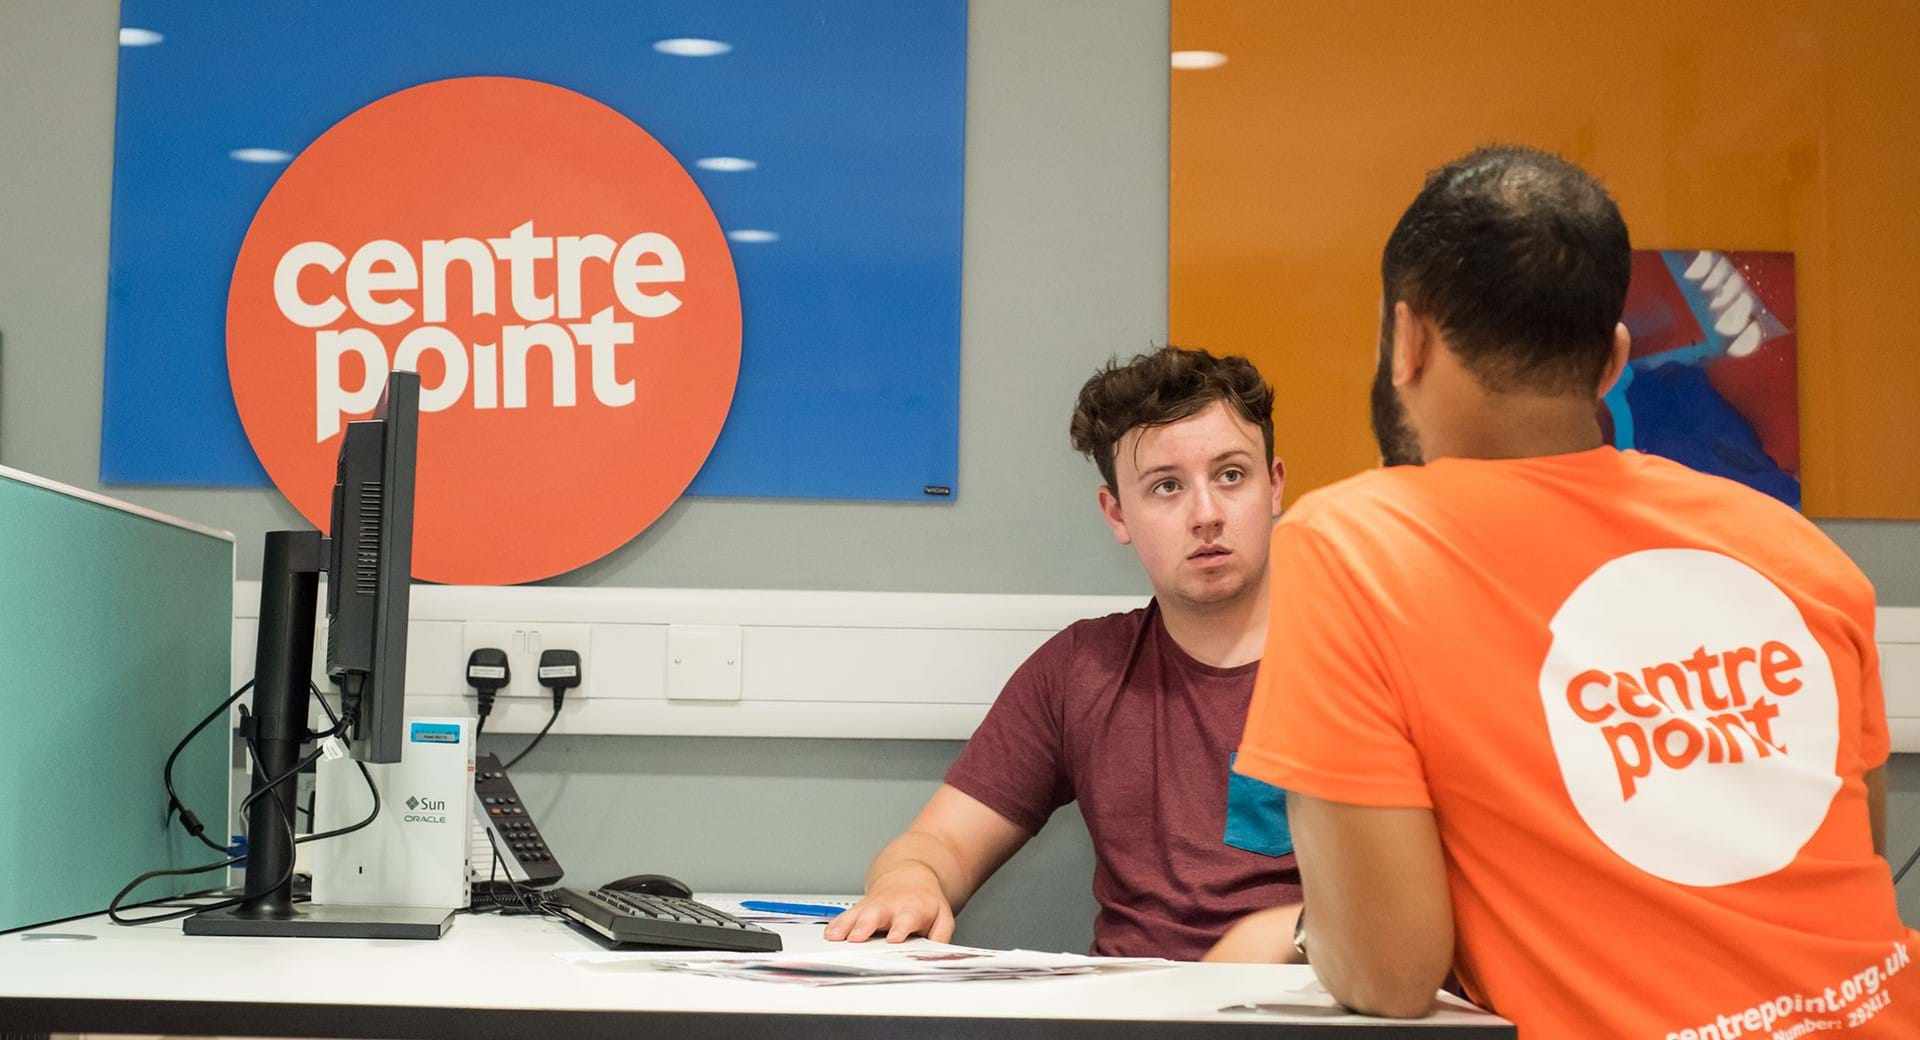 A homeless young person being supported by a Centrepoint keyworker.